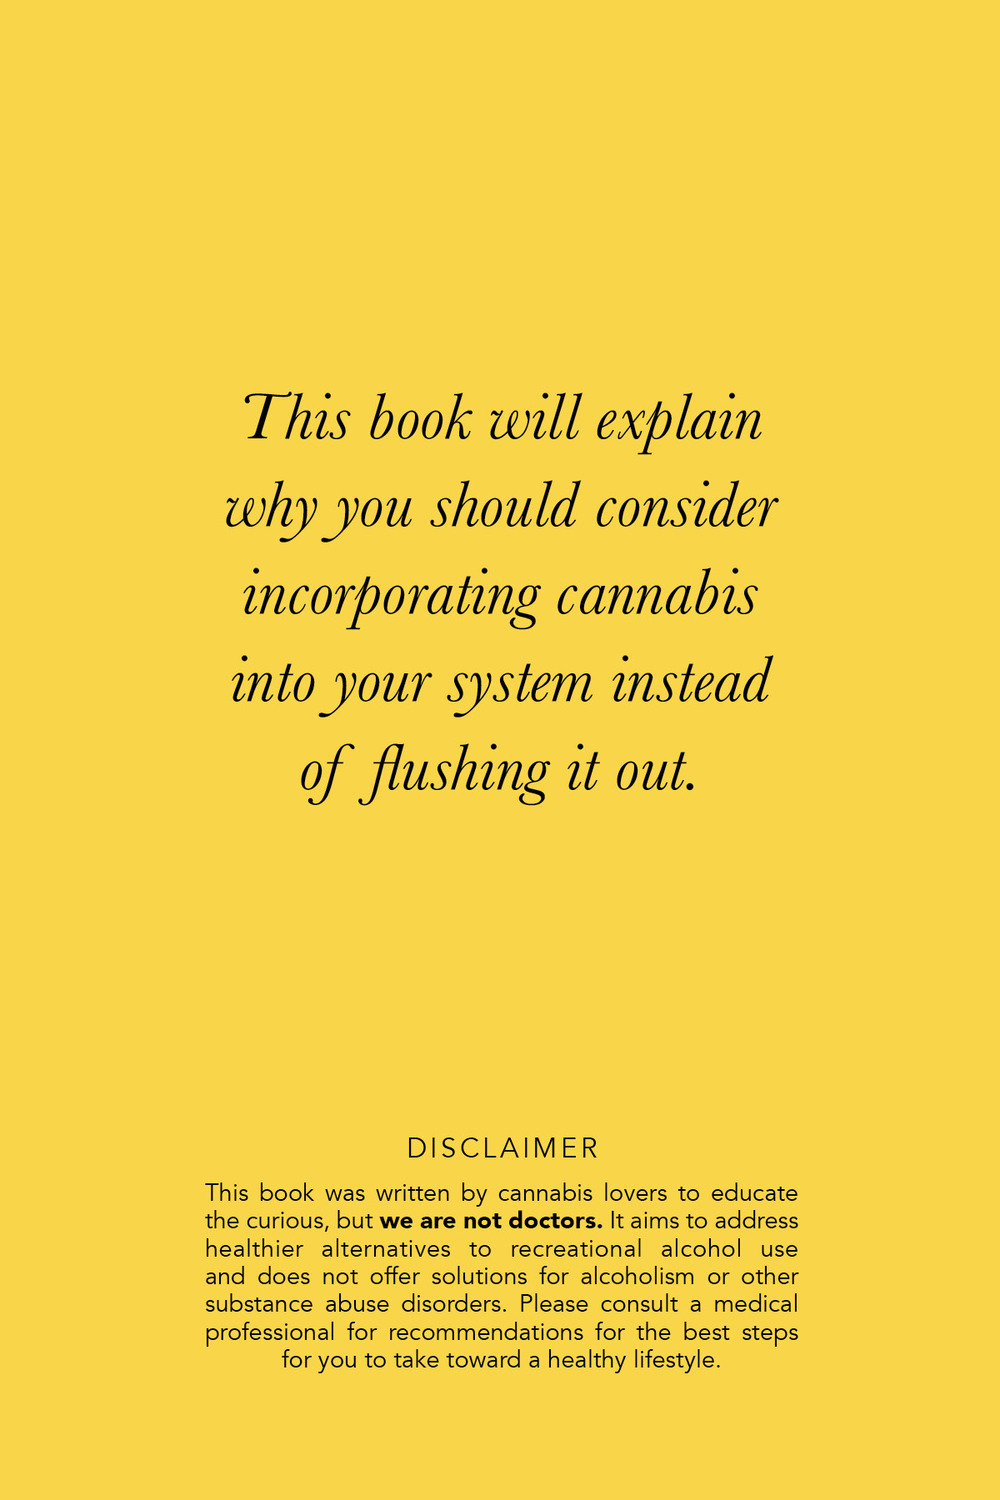 CannabisCleanse-pagesasimages5.jpg